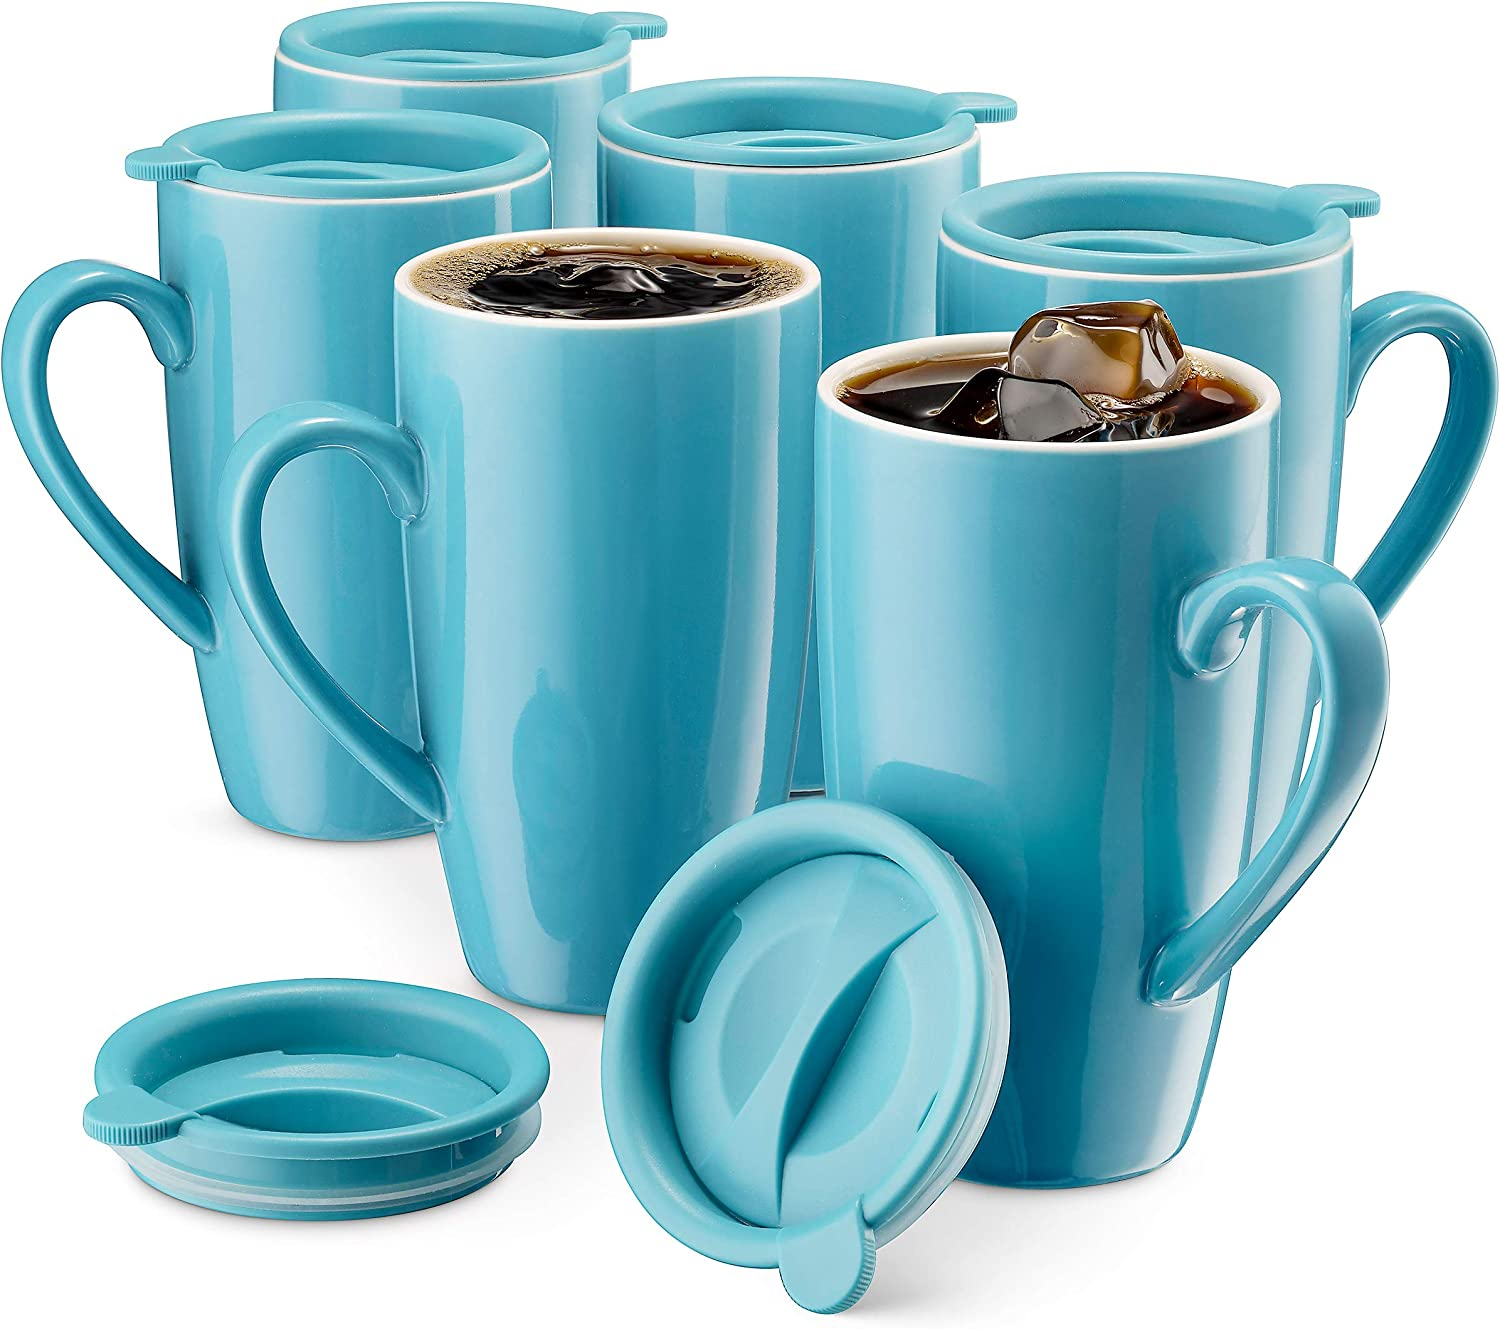 MITBAK 6-Pack Ceramic Coffee Mug Set with Lids (16-Ounce) | Large Blue Tumbler Mugs Great for Taking Your Coffee & Tea To-Go | Large Insulated Mug Set Excellent Choice for Camping, Travel & Office